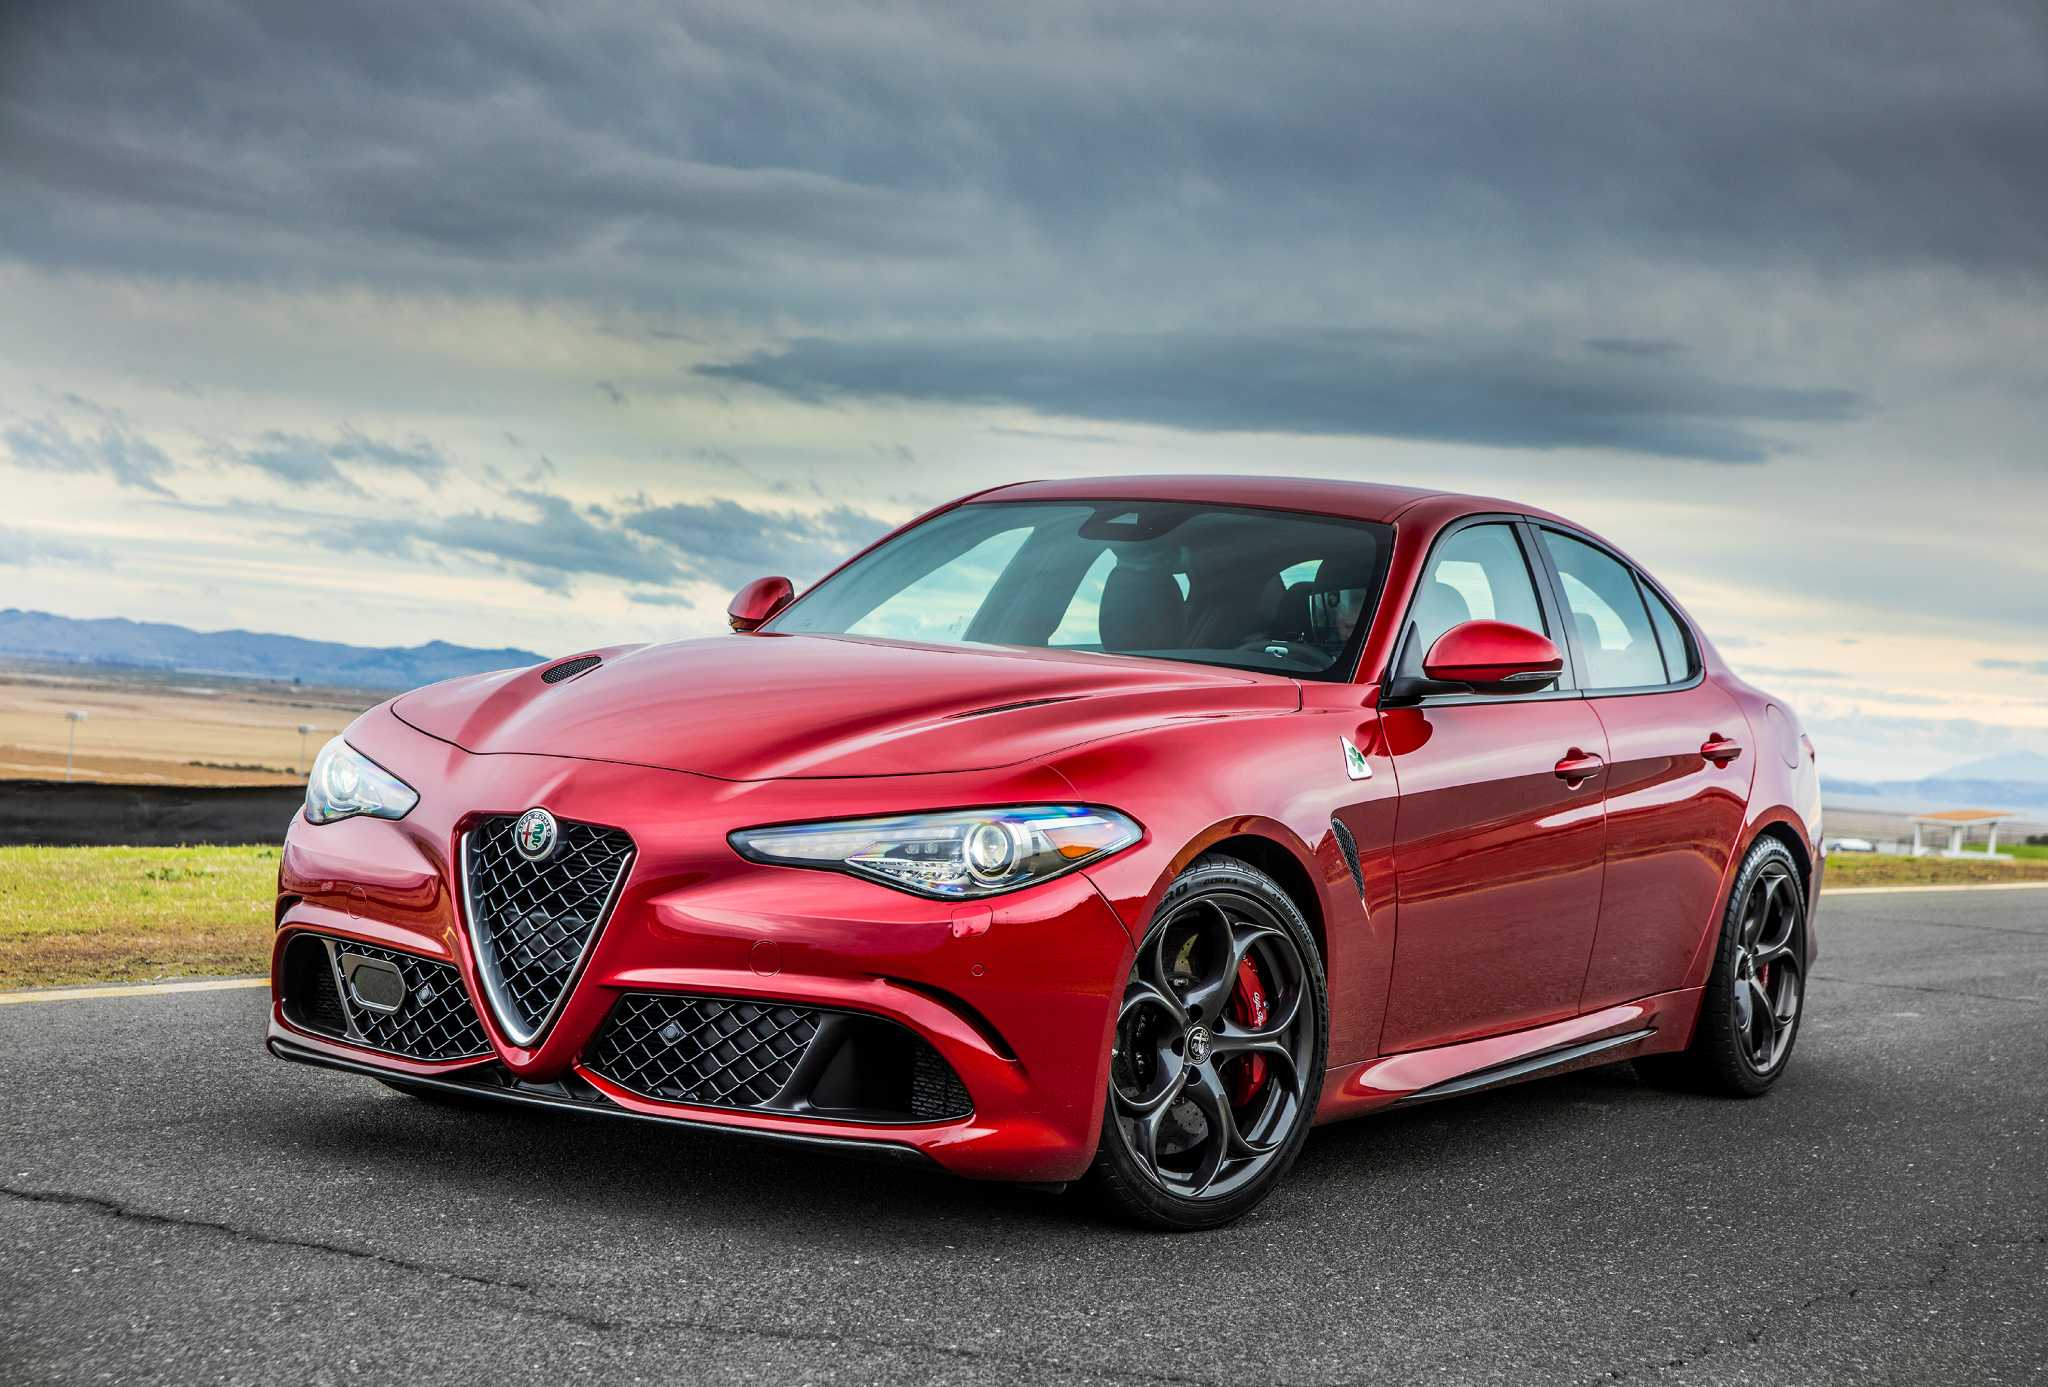 Alfa's sexy new Giulia is the four-door that fits like an Italian suit